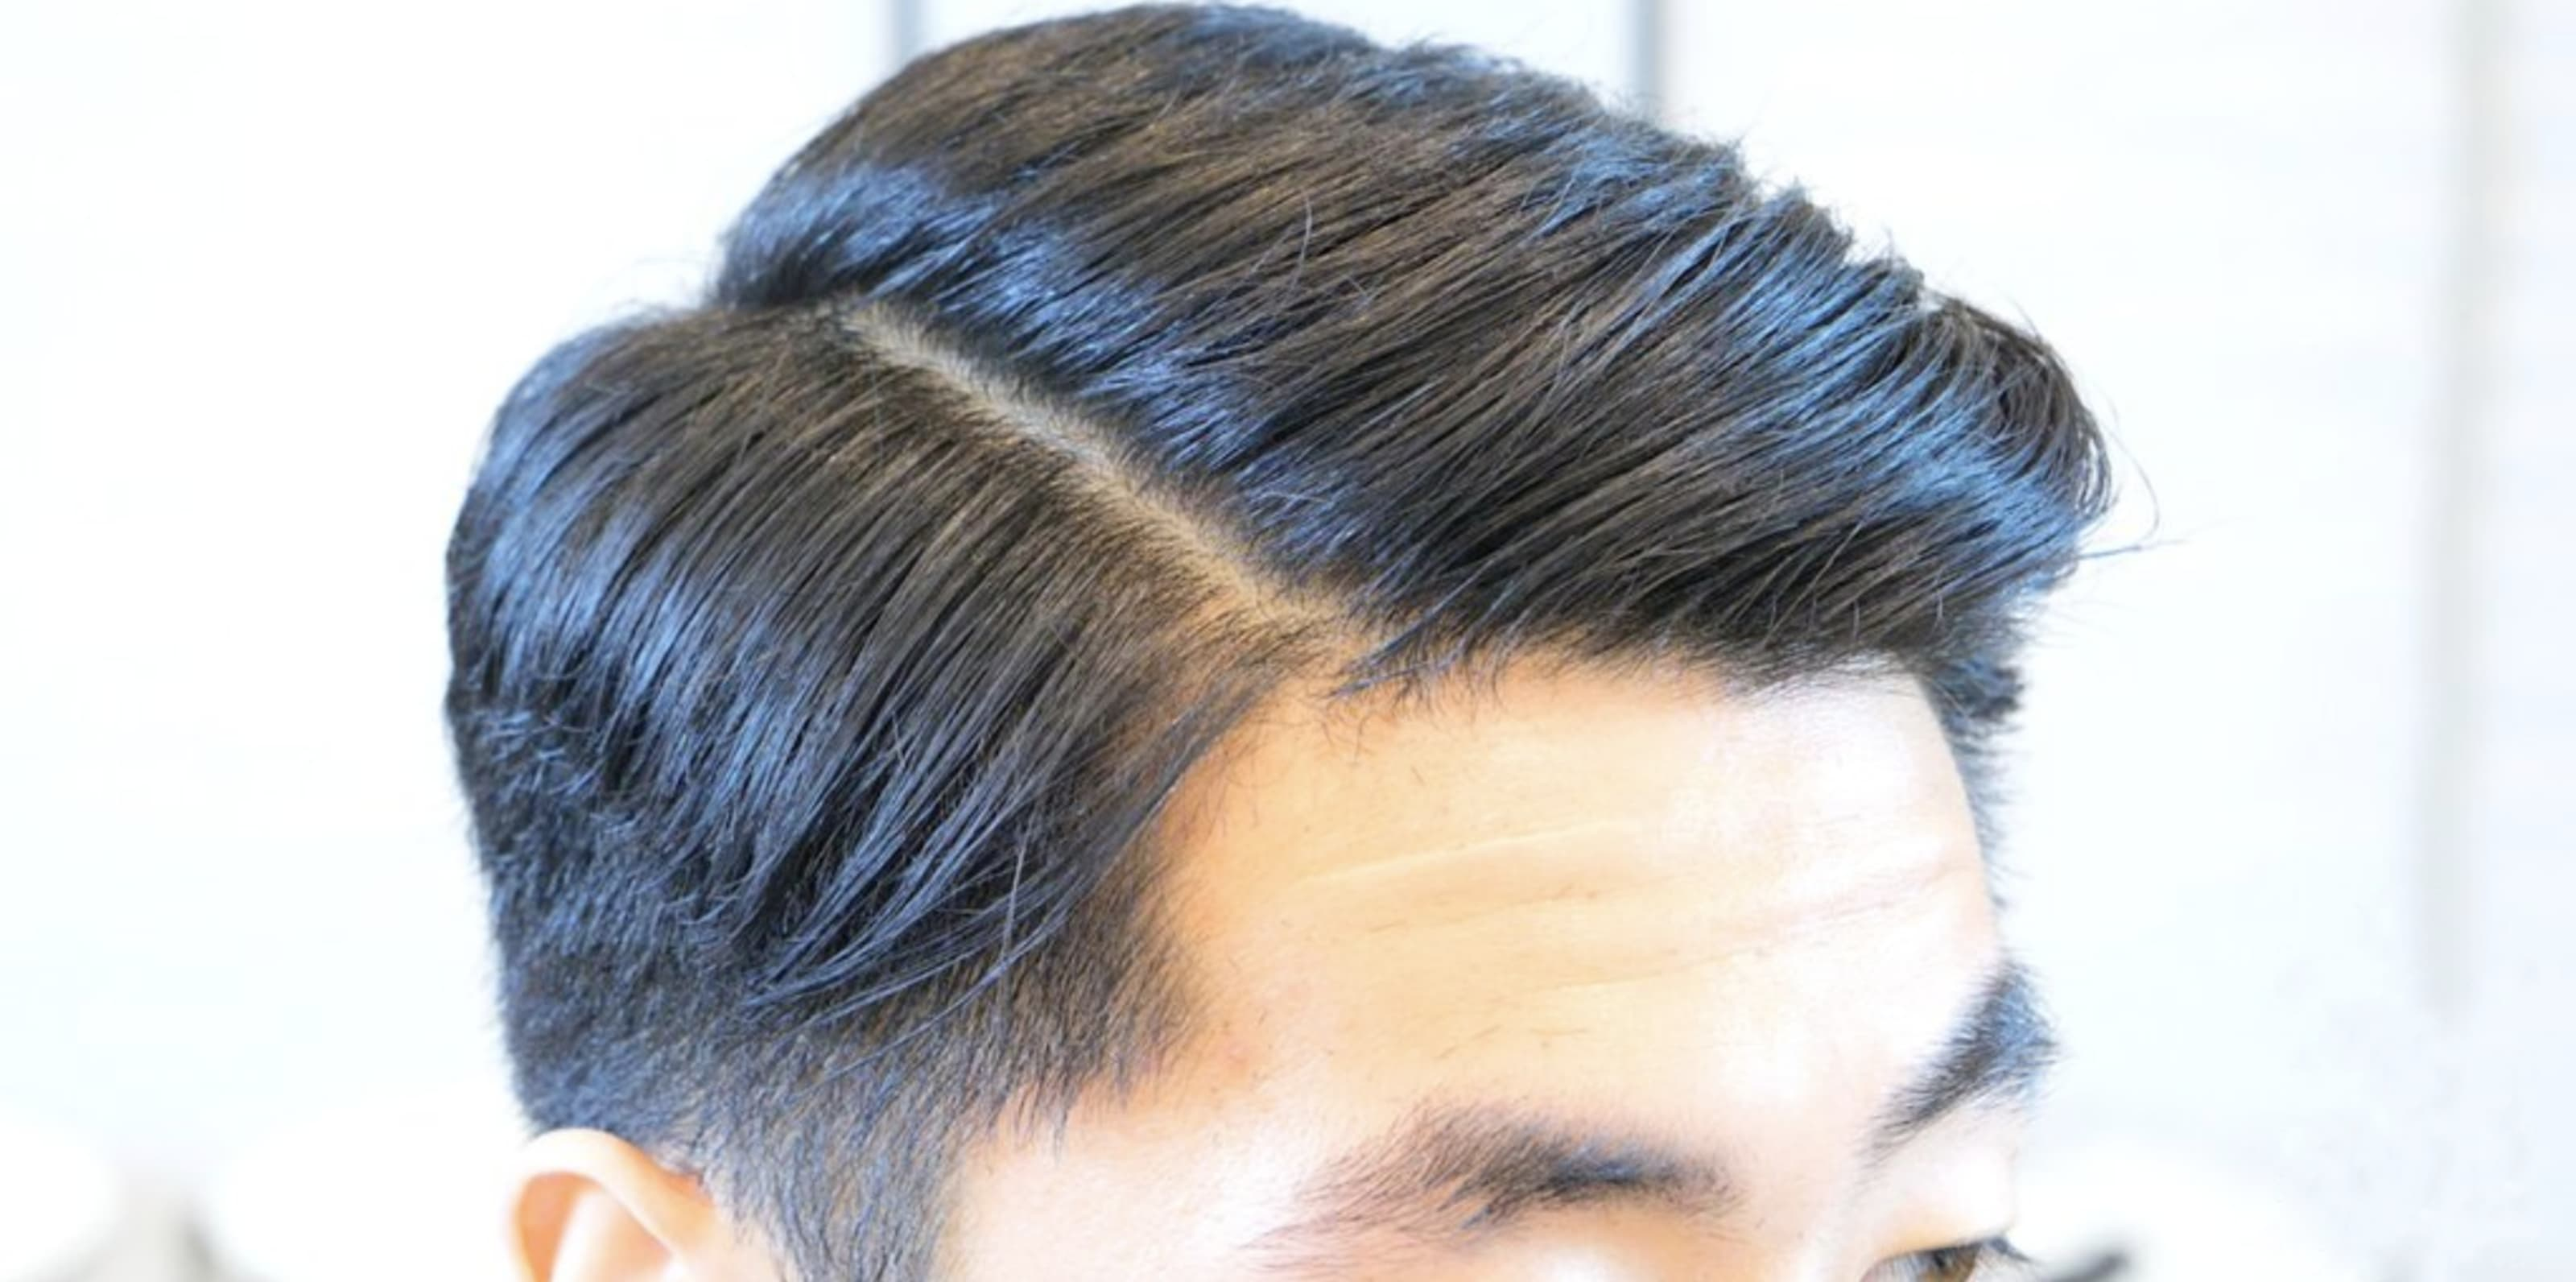 7 Best Asian Men Hairstyles – Mack for Men